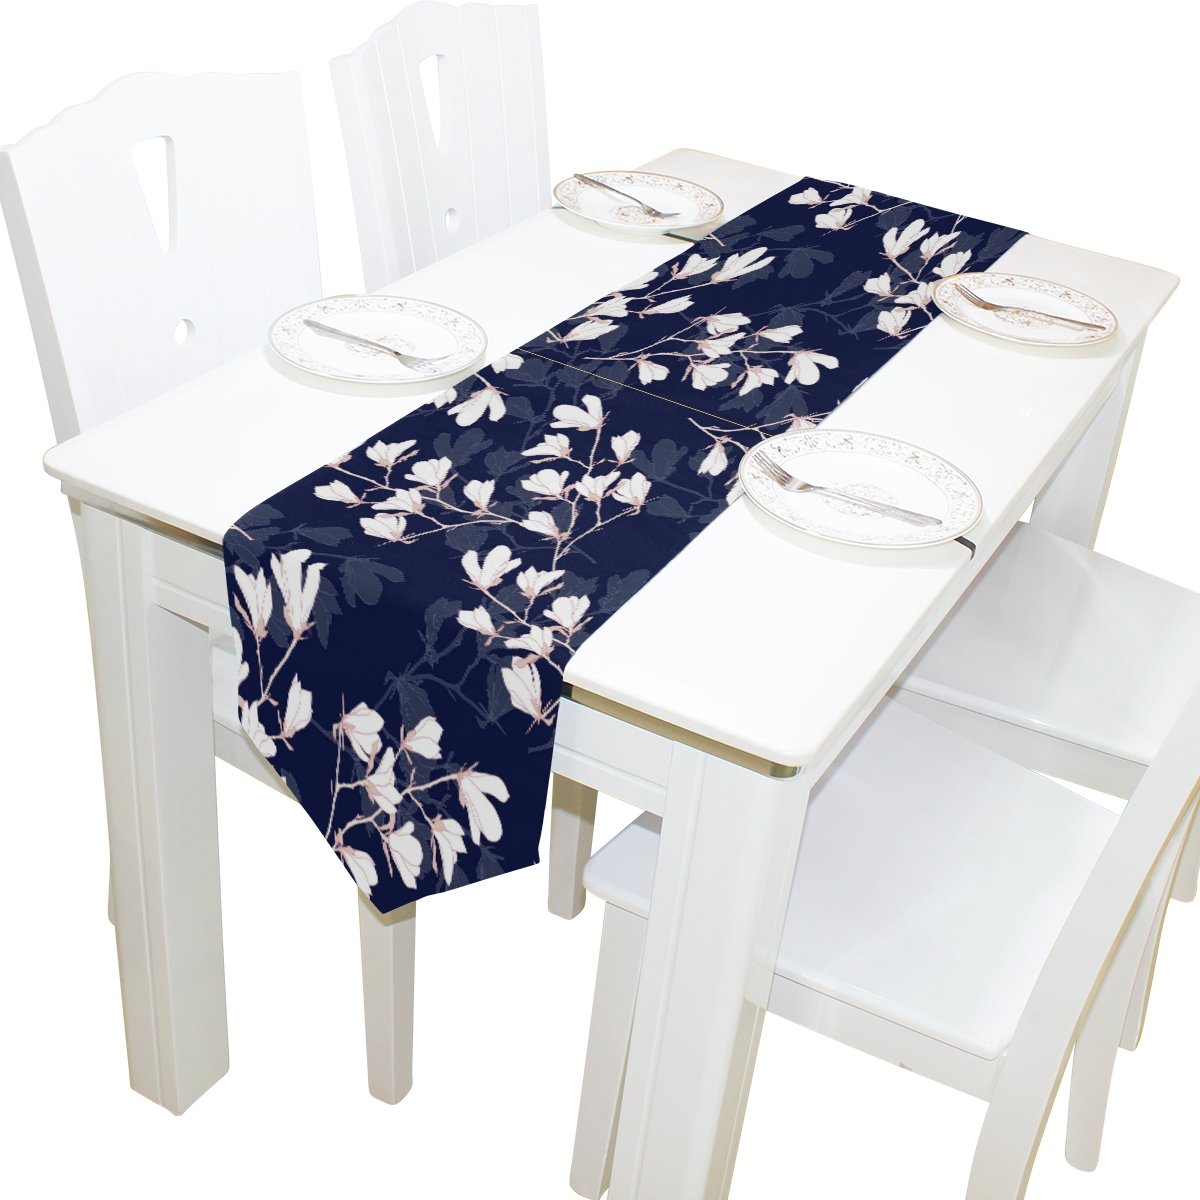 Fantastic Amazon Com Alaza Table Runner Home Decor Vintage Navy Gmtry Best Dining Table And Chair Ideas Images Gmtryco